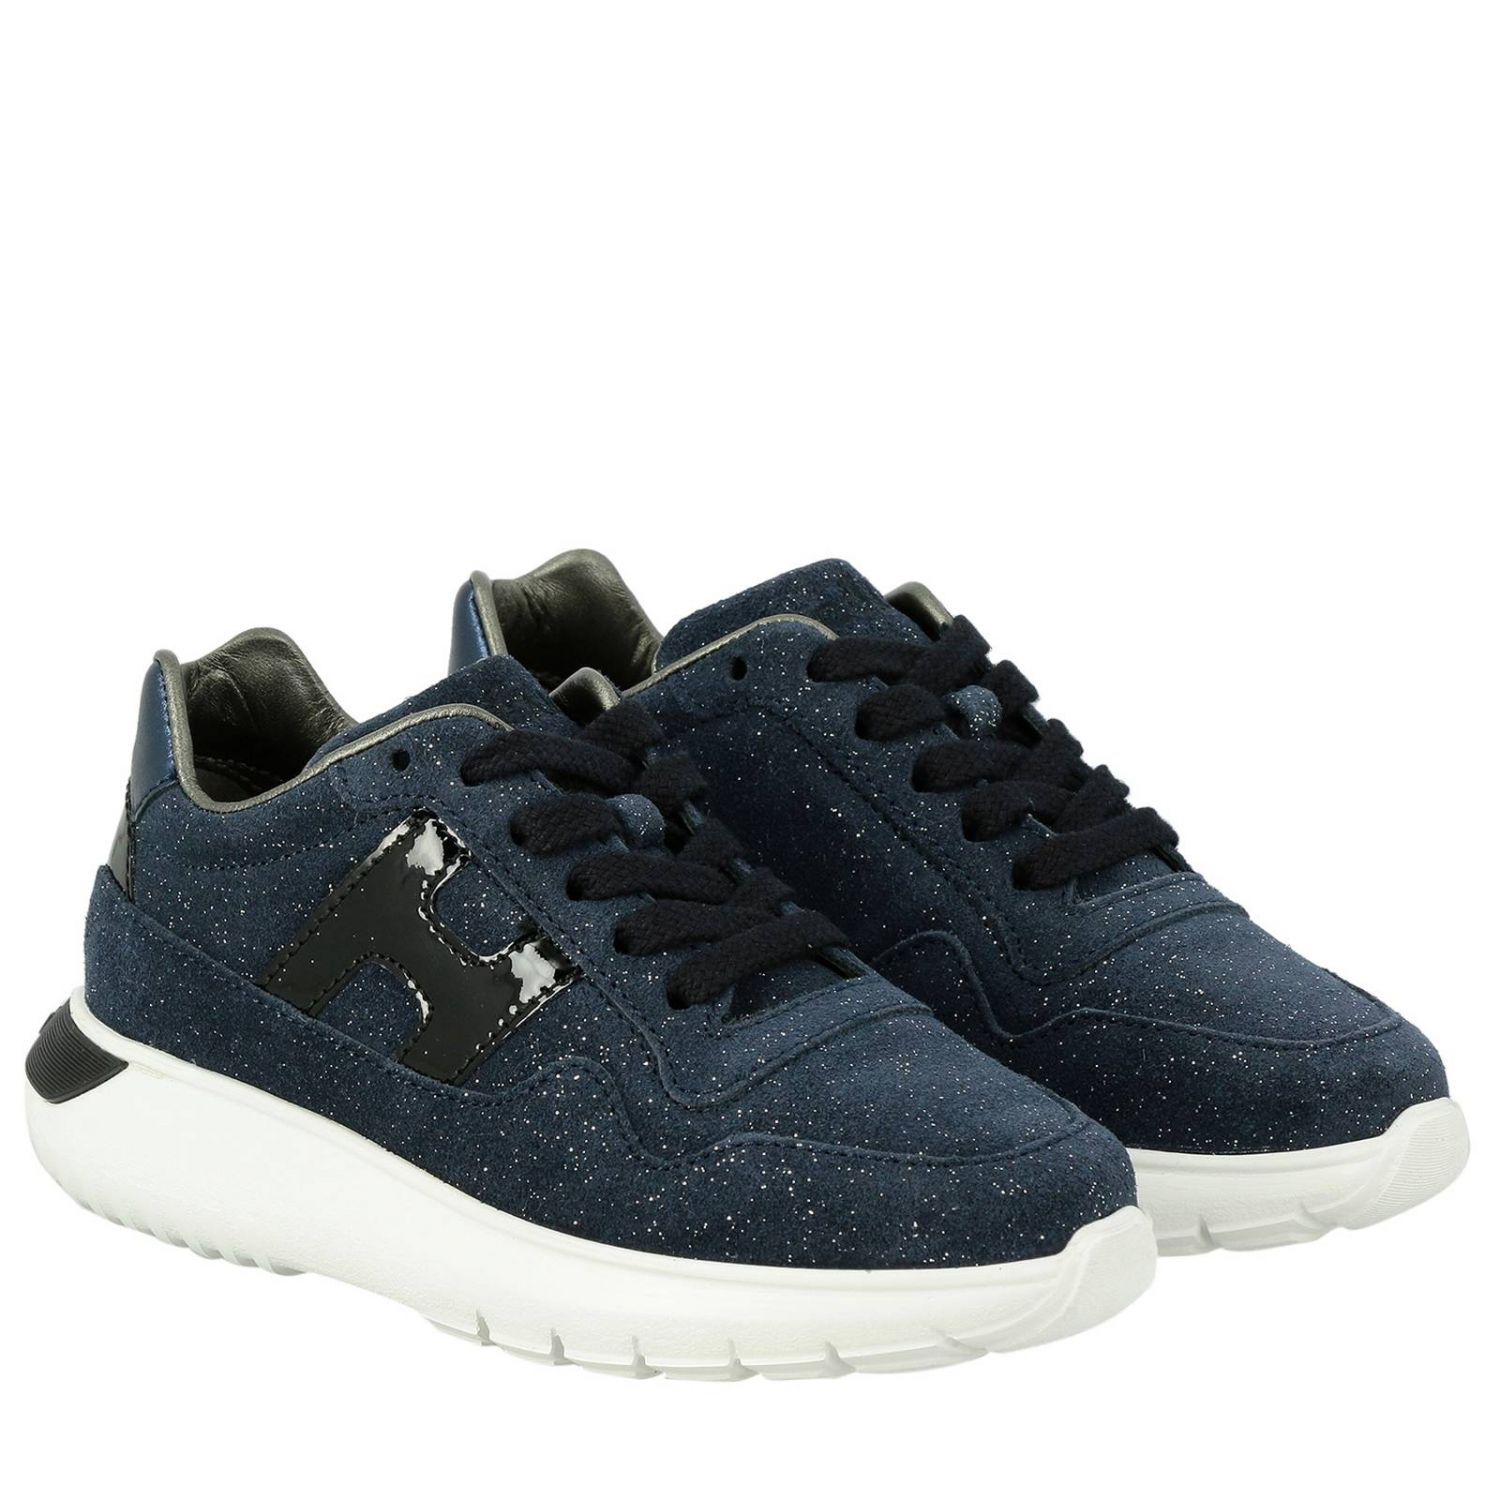 Cube Hogan glitter suede sneakers with patent leather H blue 2